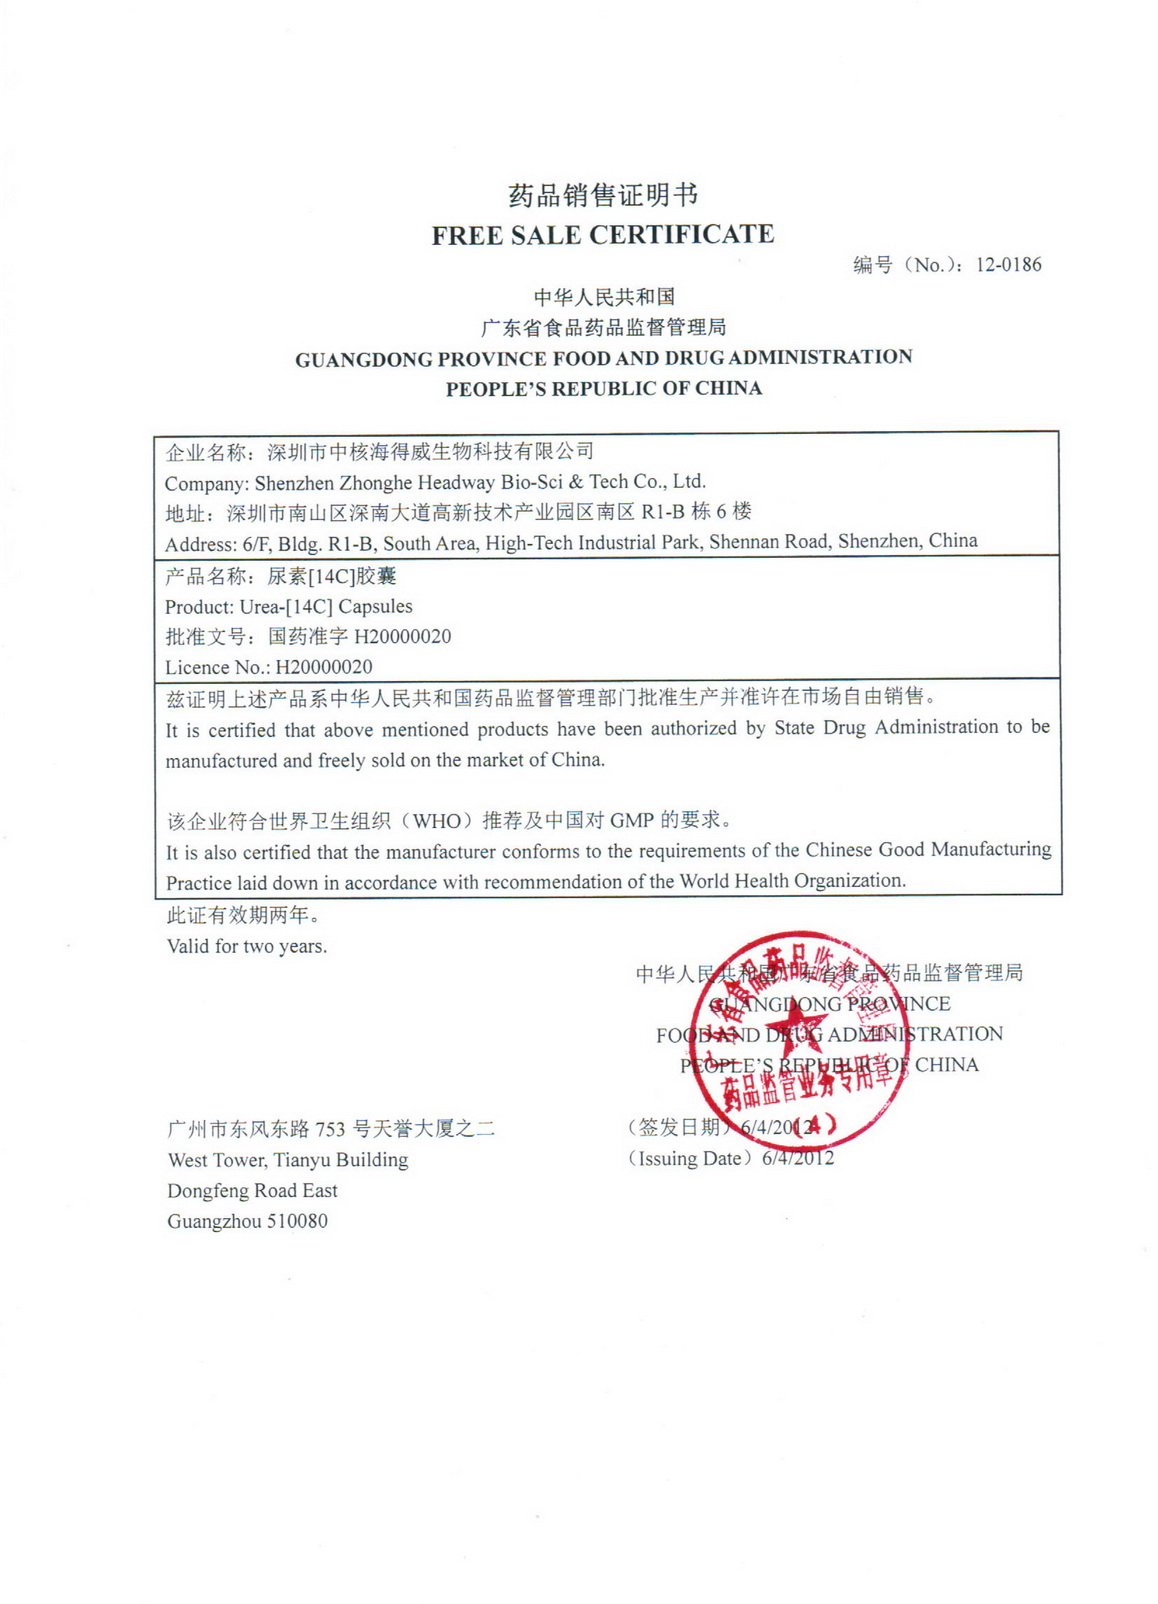 Sample certificate of free sale in china images certificate sample certificate of free sale in china choice image sample certificate of free sale in china yadclub Choice Image